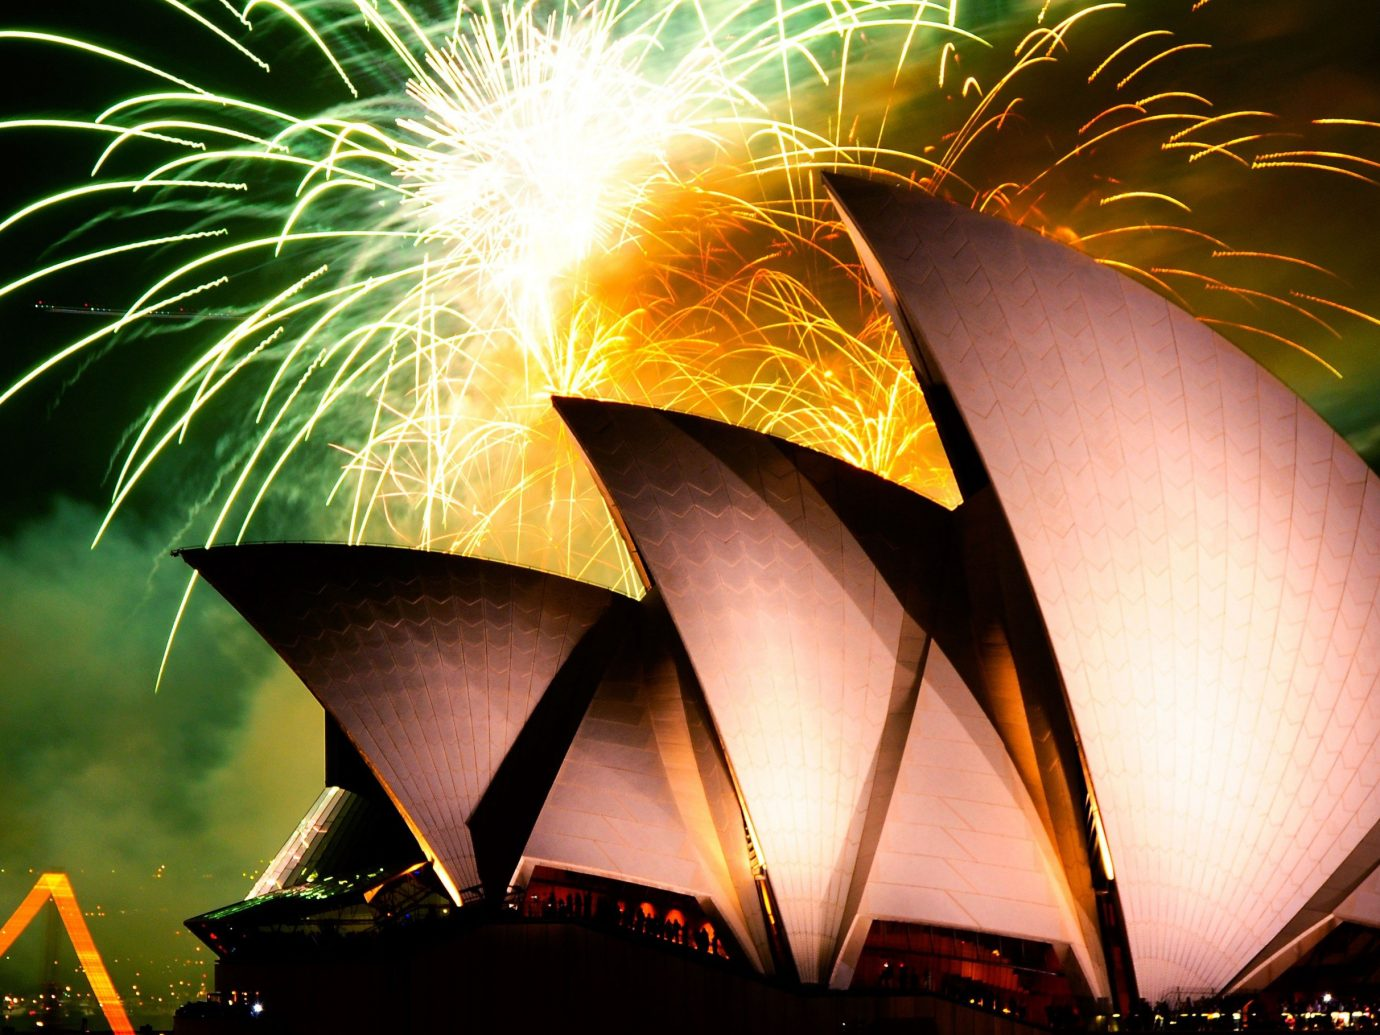 Trip Ideas fireworks outdoor object night outdoor recreation event recreation